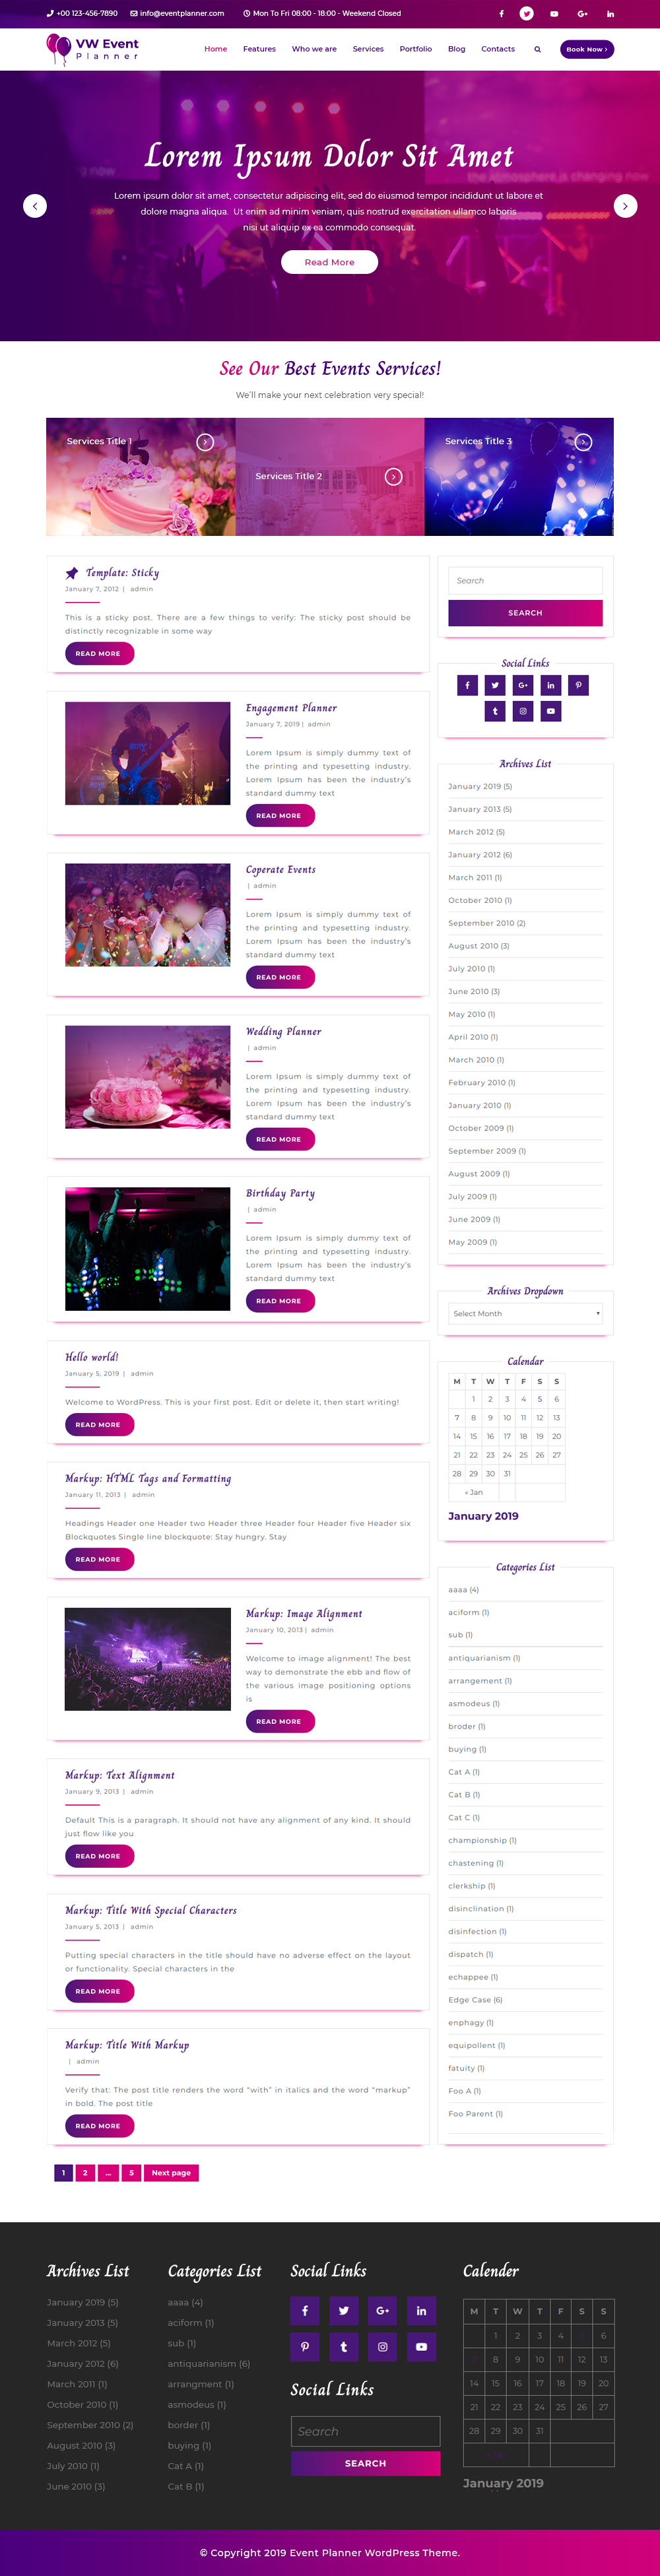 Best Free Event Planner WordPress Theme for Parties